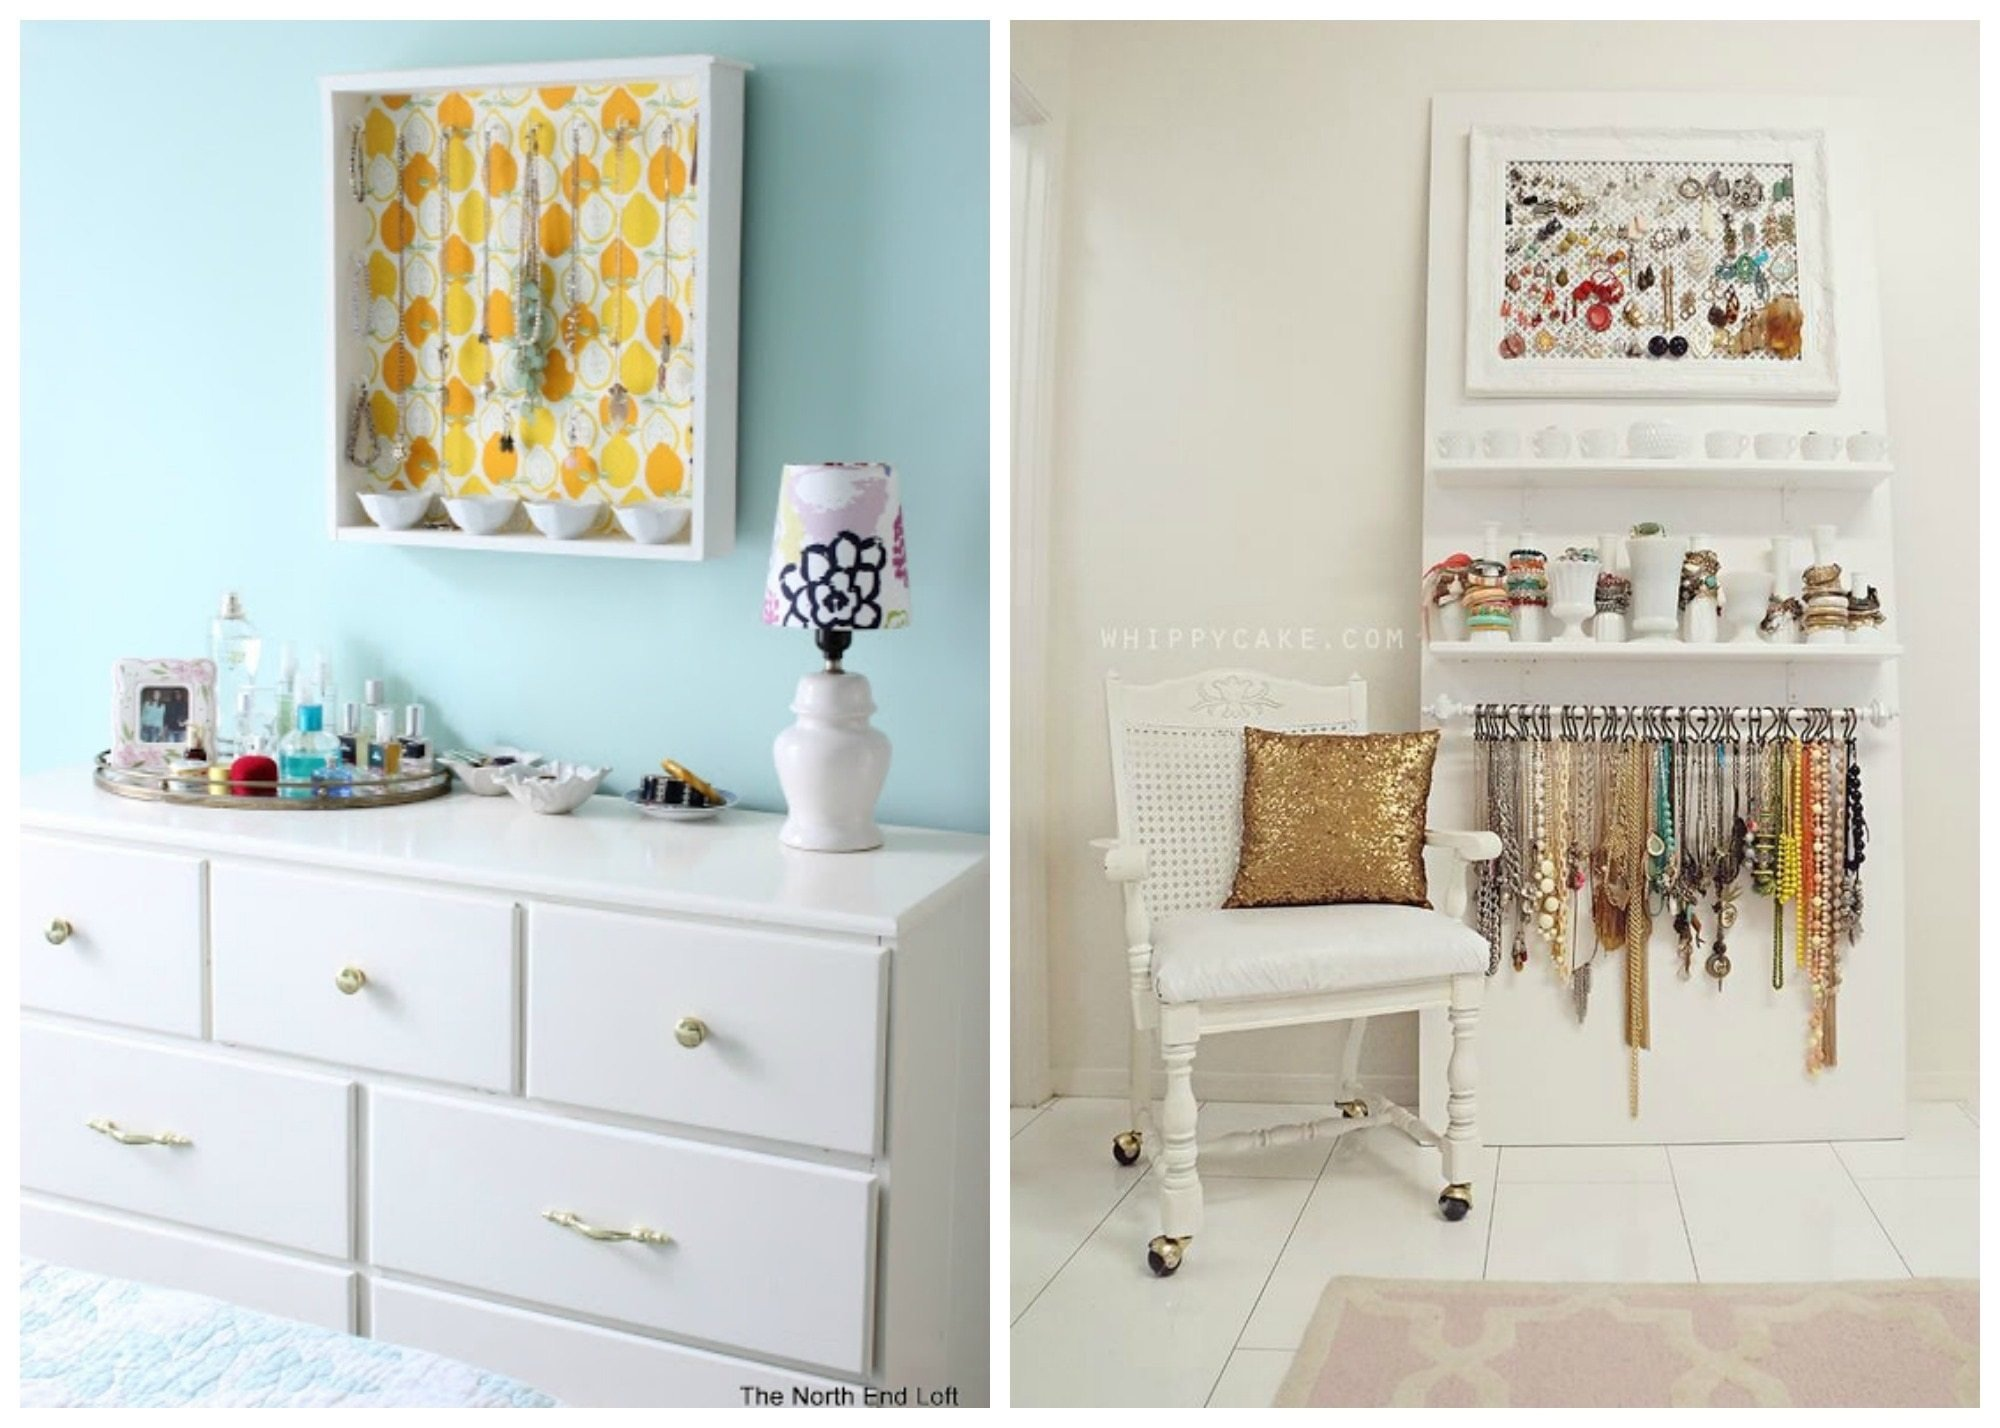 Best Home Hacks 19 Tips To Organize Your Bedroom Thegoodstuff With Pictures